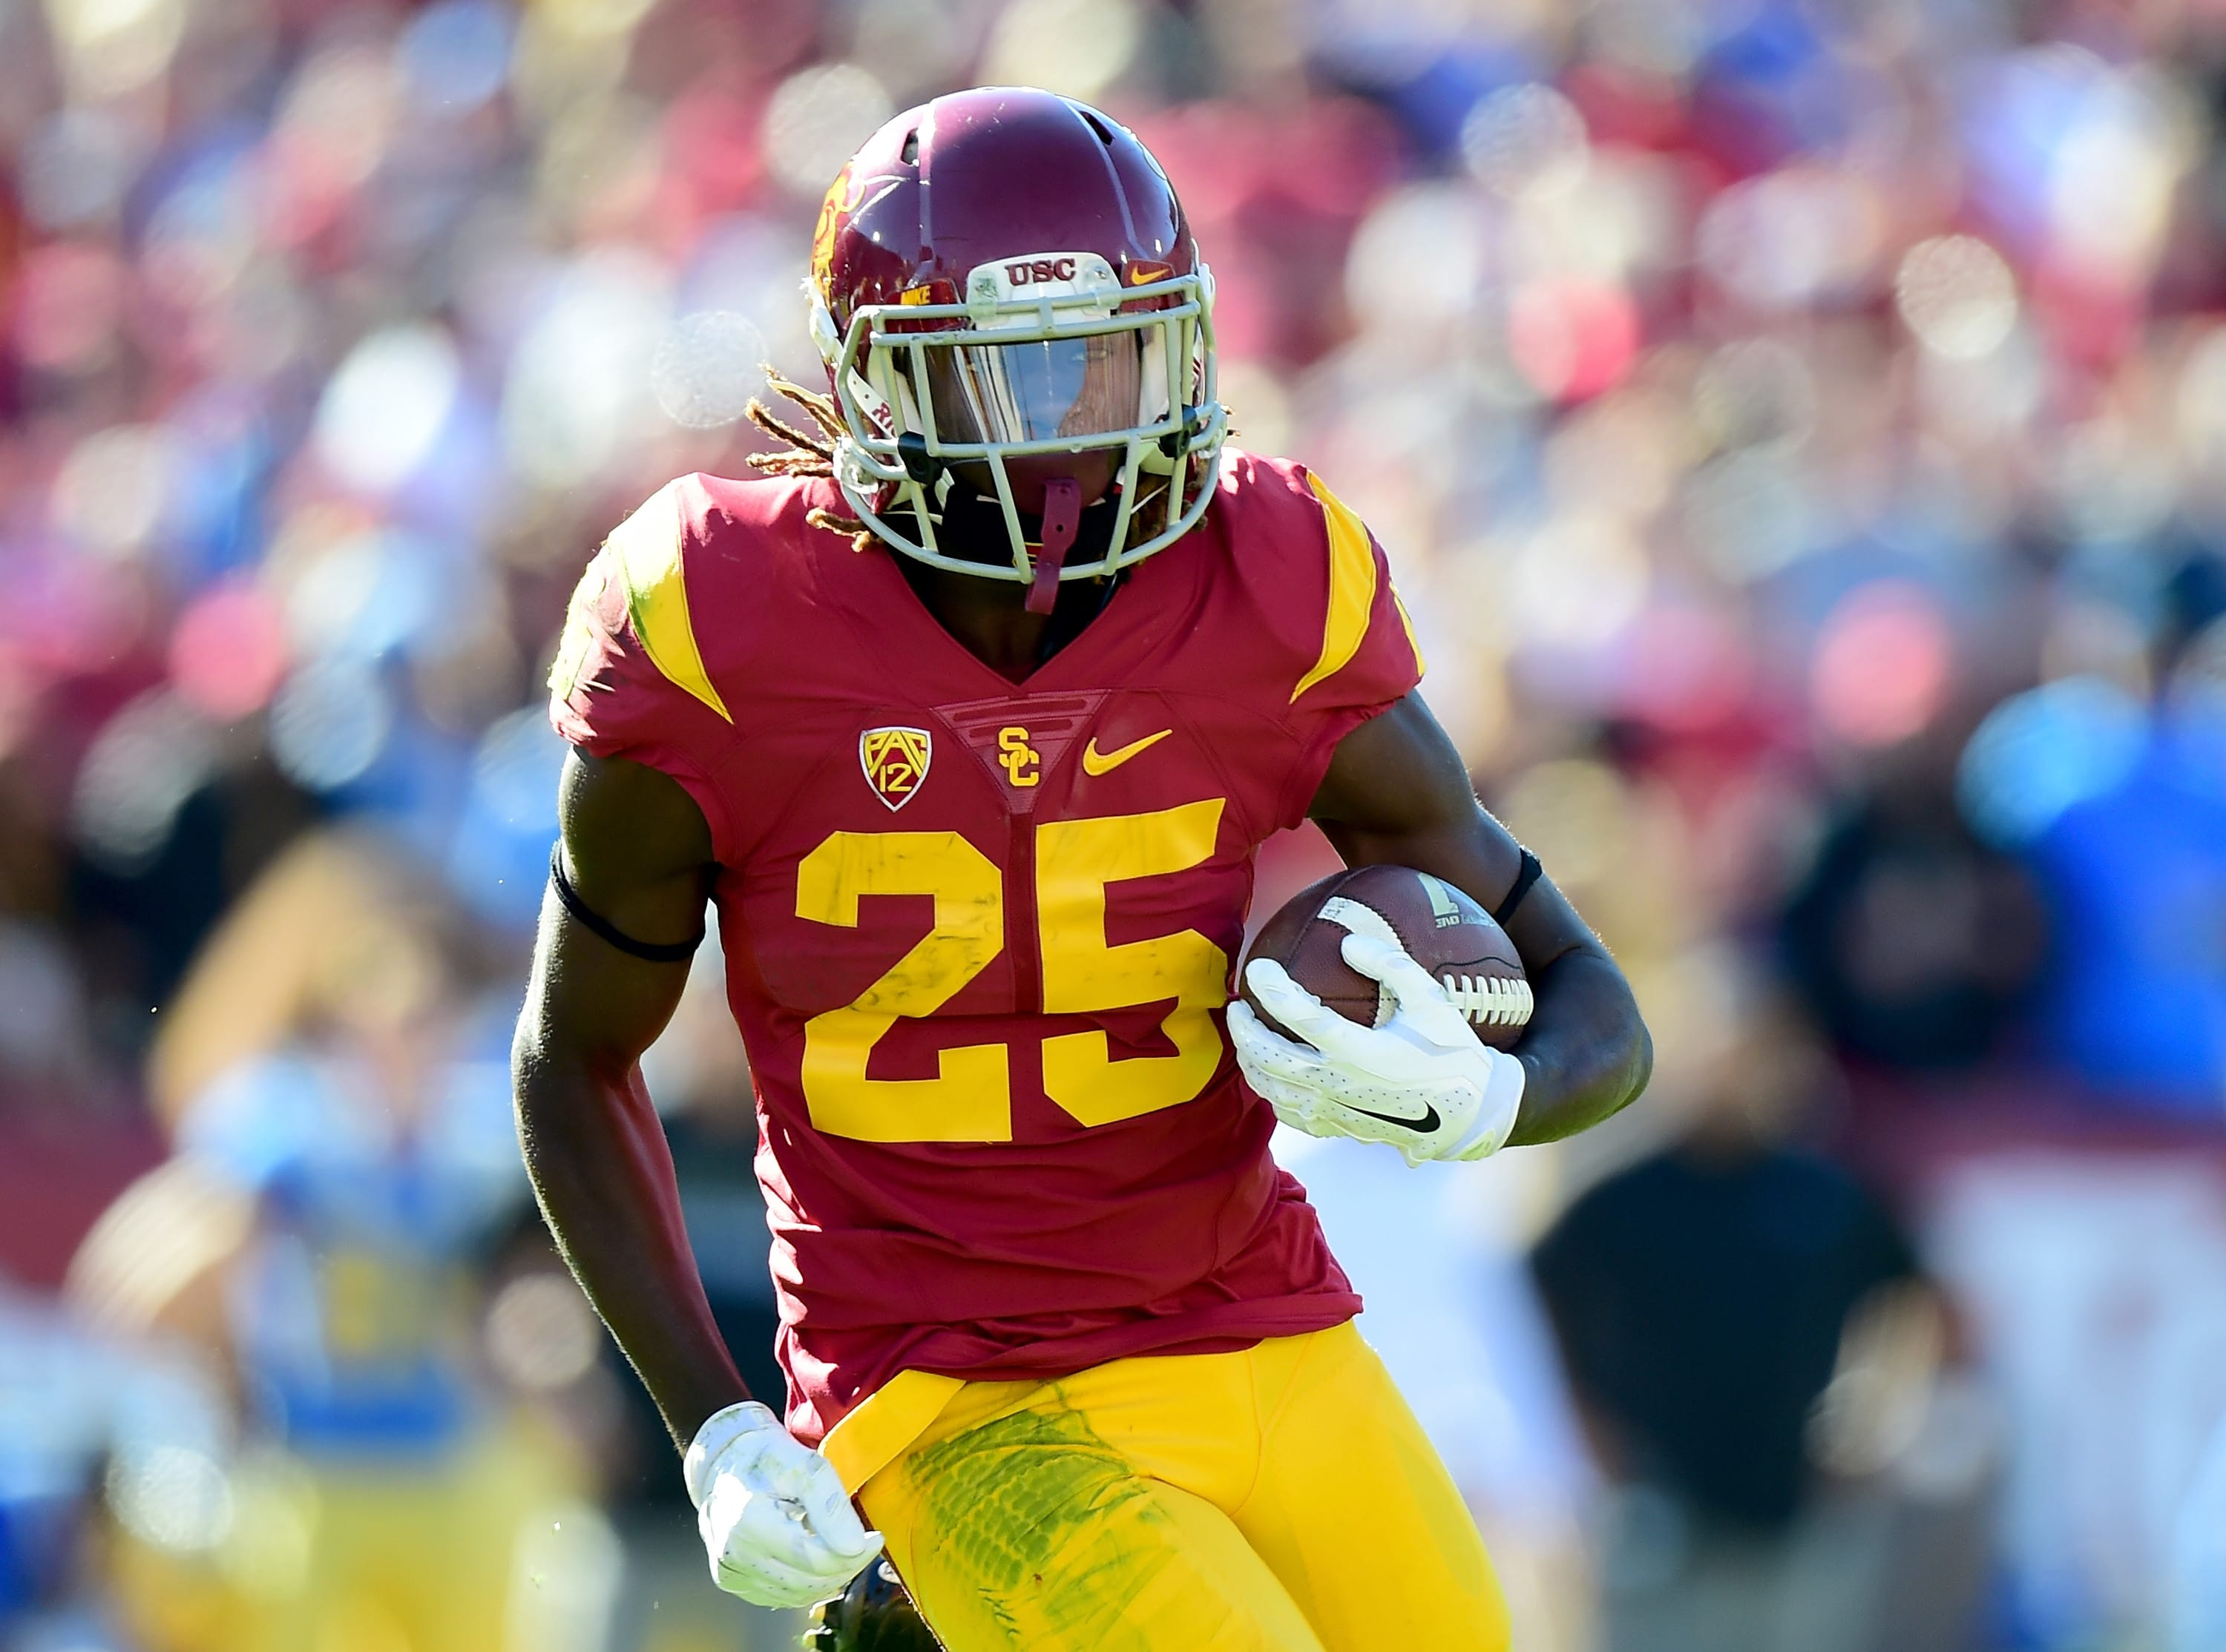 Ranking Usc Football S Top 5 Running Backs Since 2000 Page 3